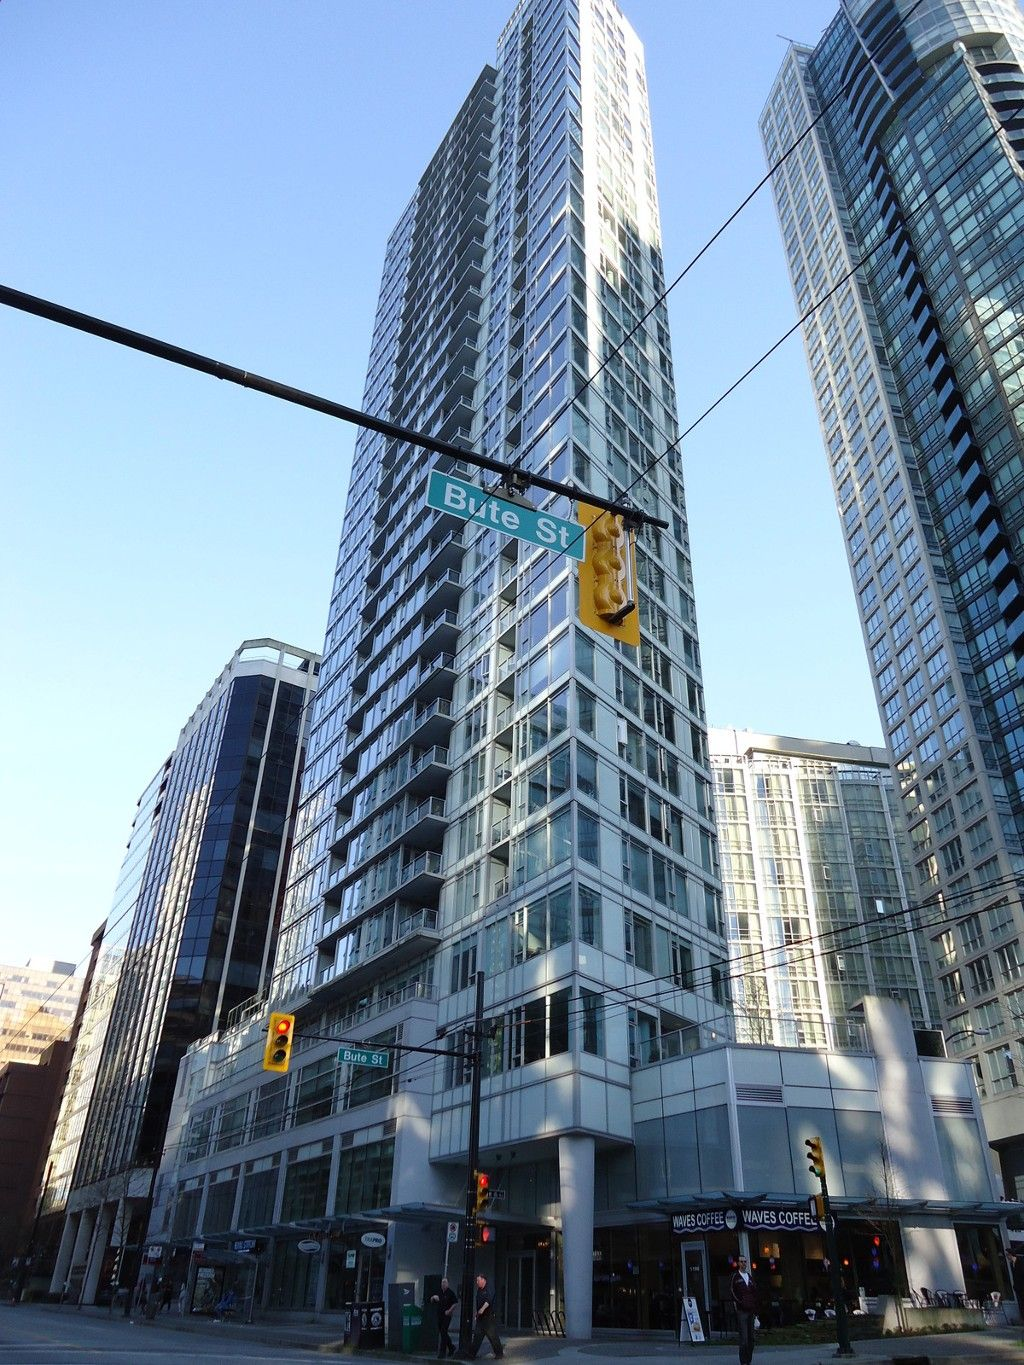 Photo 4: Photos: 1188 West Pender Street in Vancouver: Coal Harbour Condo for rent (Vancouver West)